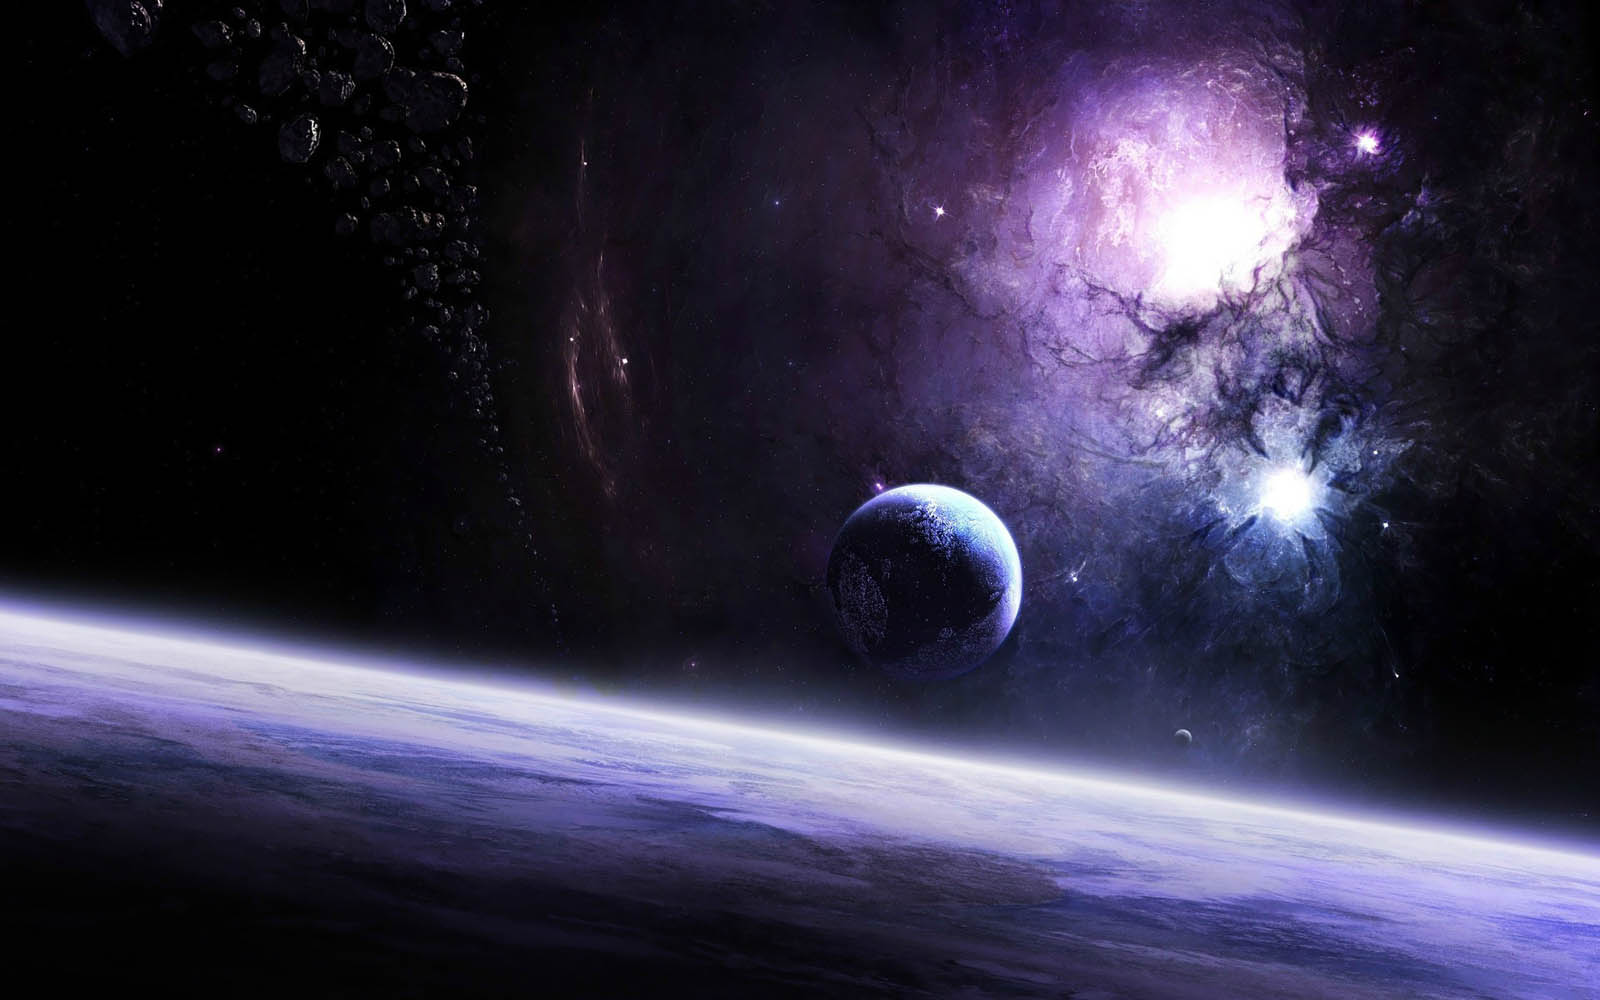 Wallpaper Planets In Space Wallpapers